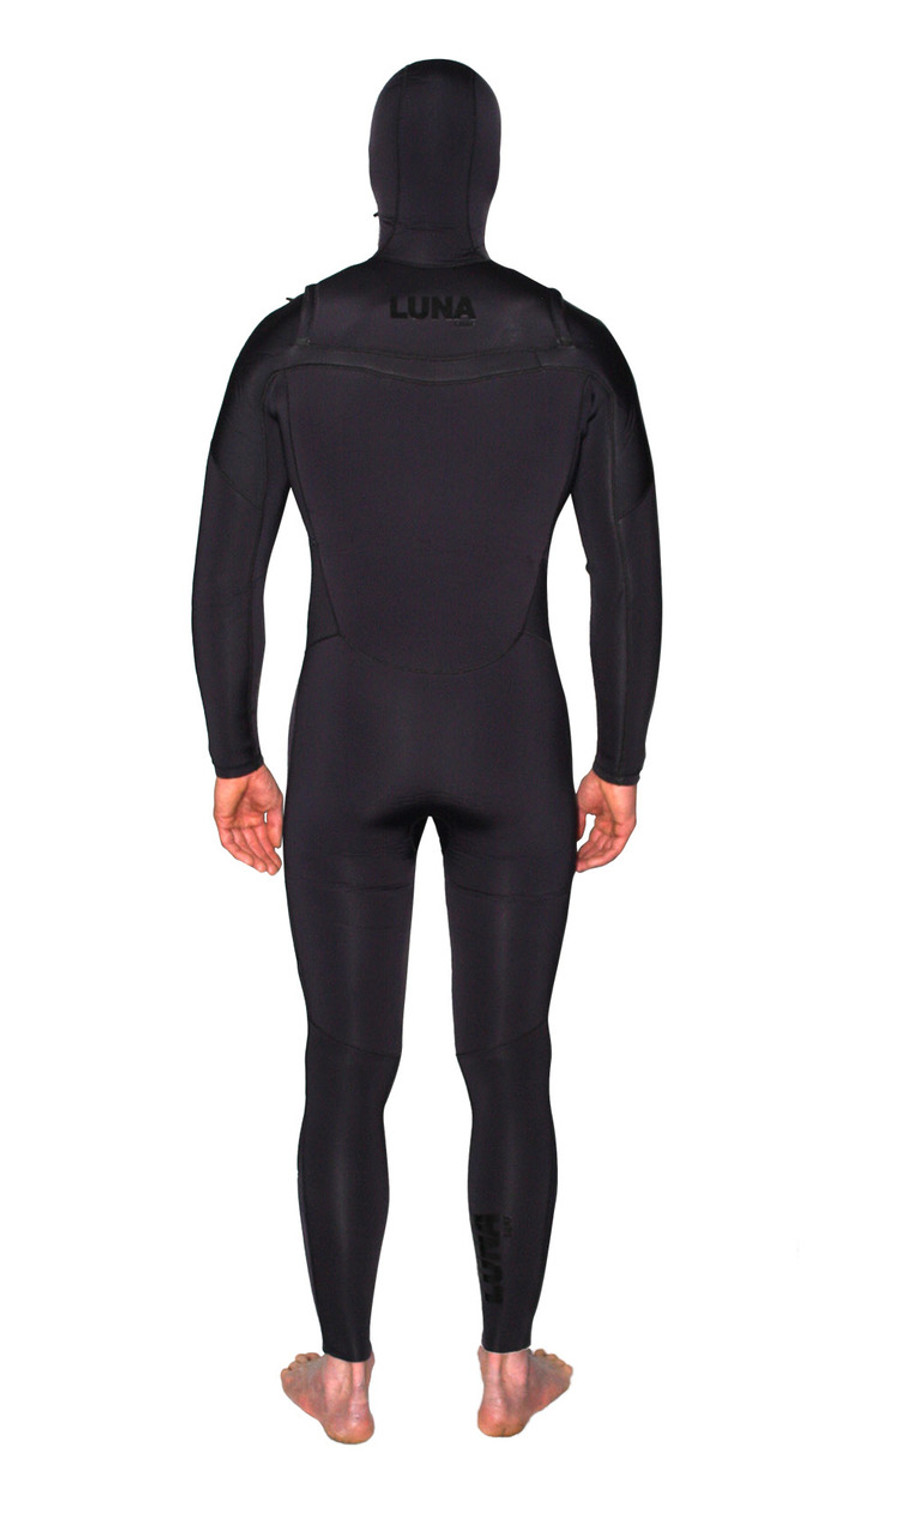 6.4mm hooded wetsuit stealth